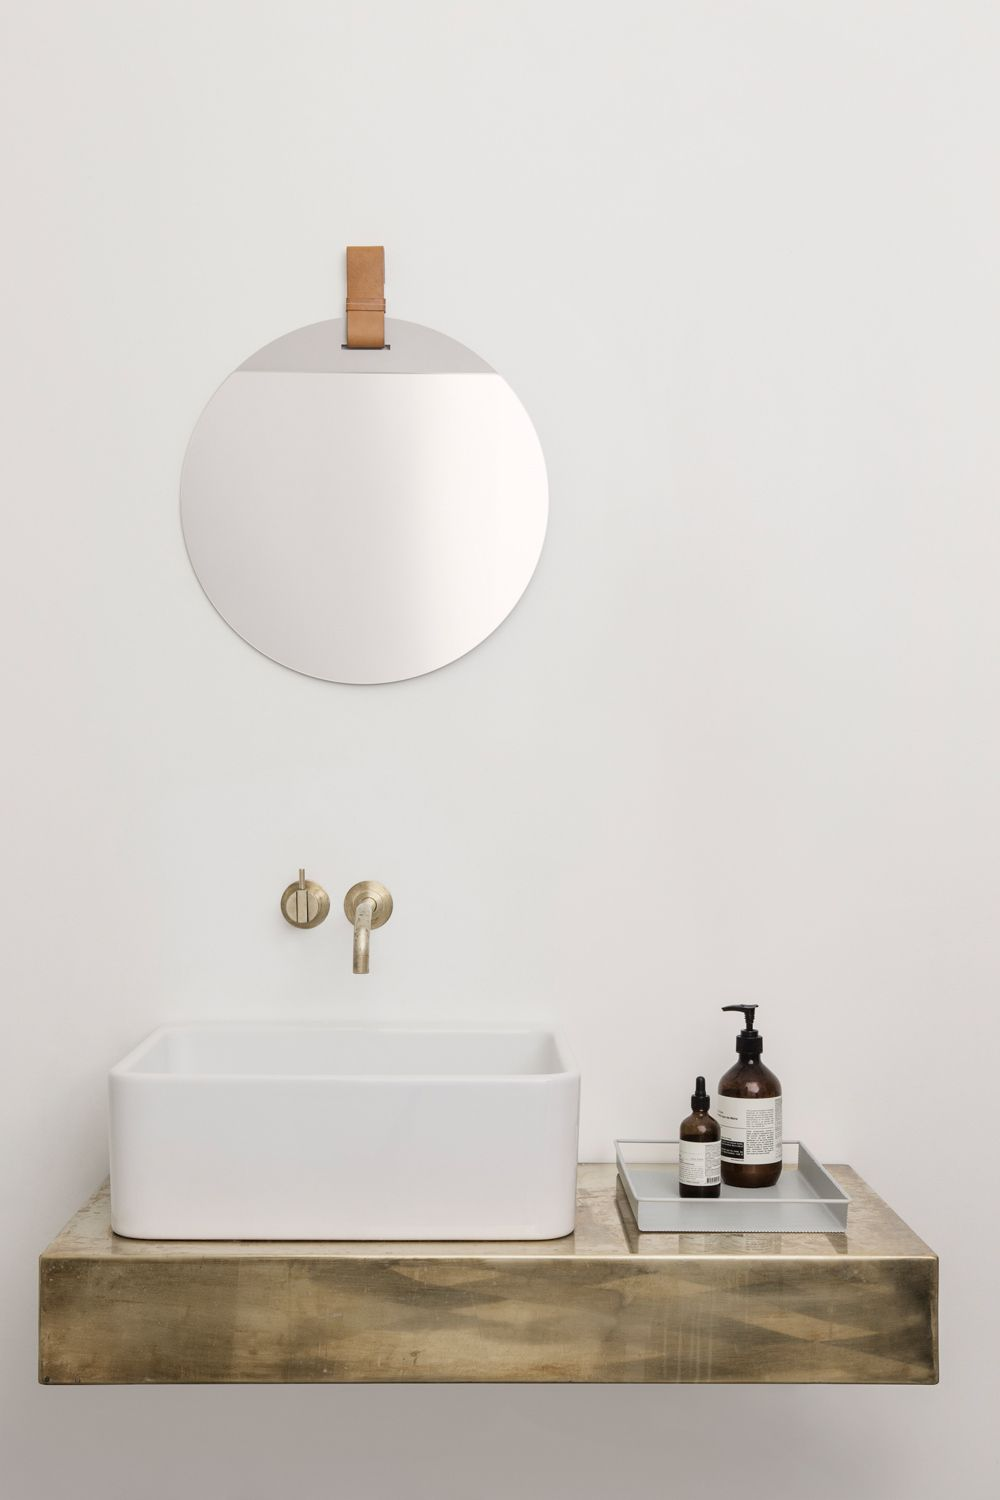 Ferm Living's New Collection Gets It All Right via @MyDomaine